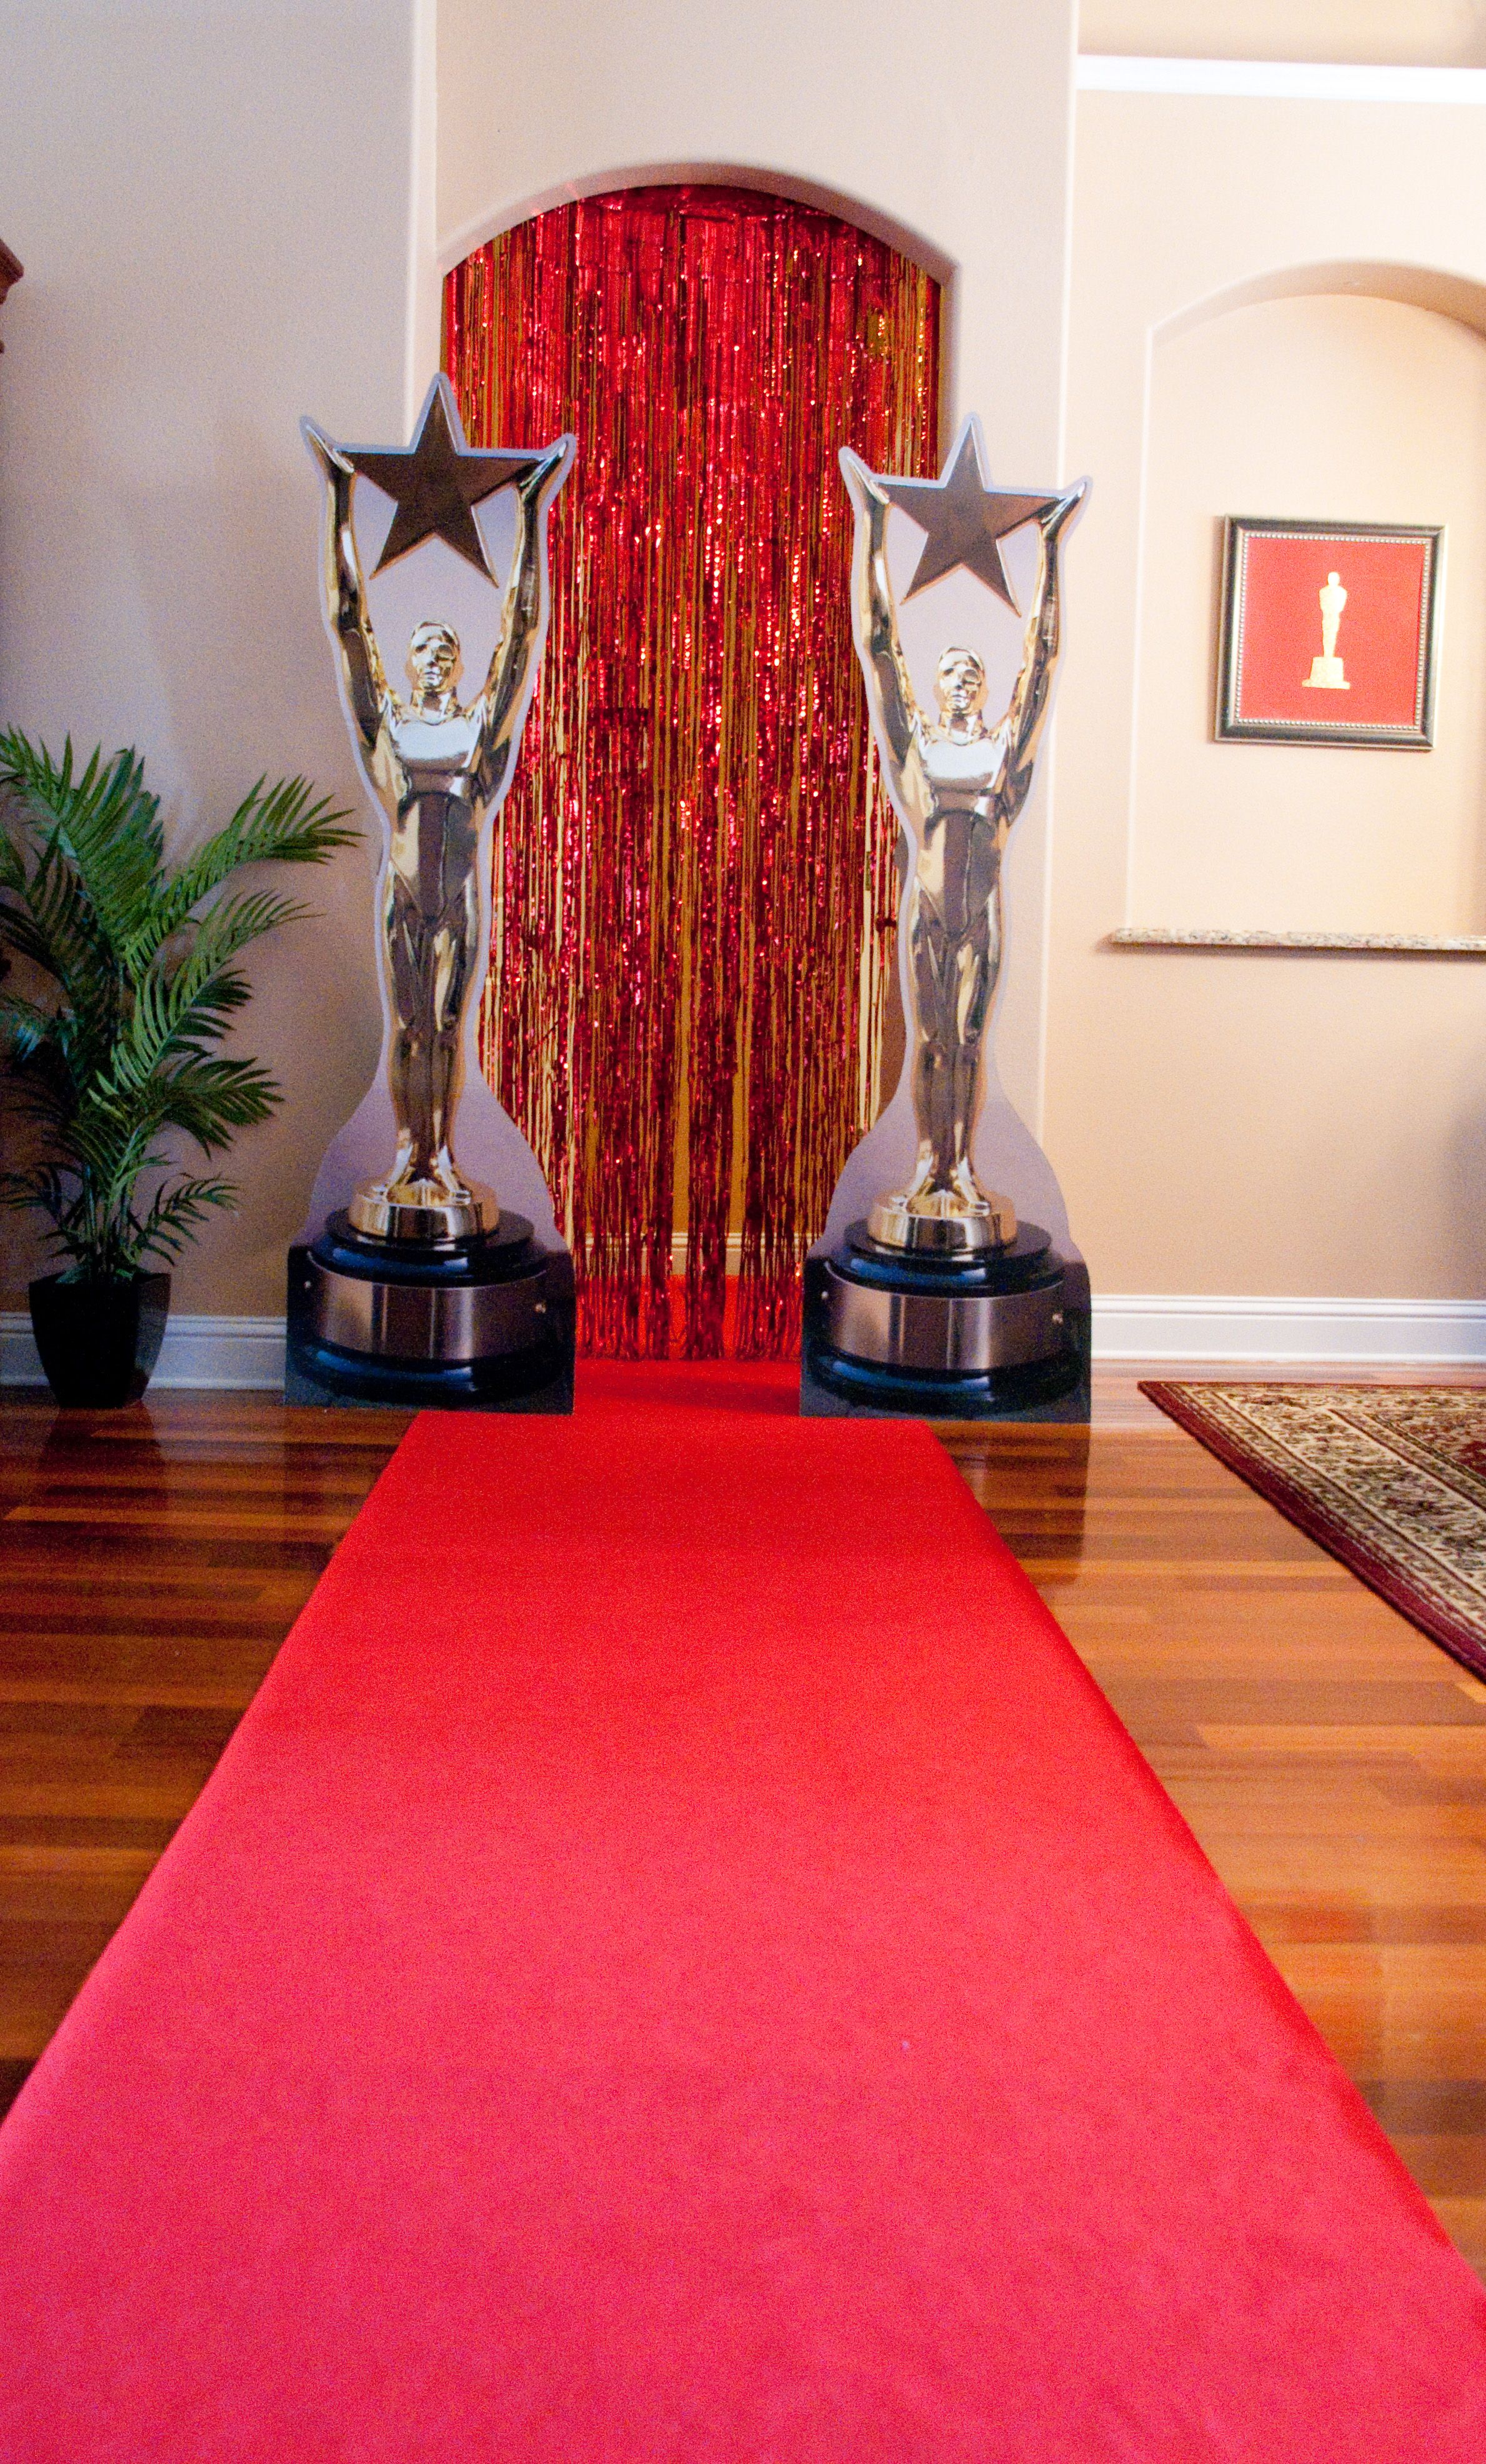 Roll out the red carpet and add cardboard standees on either side